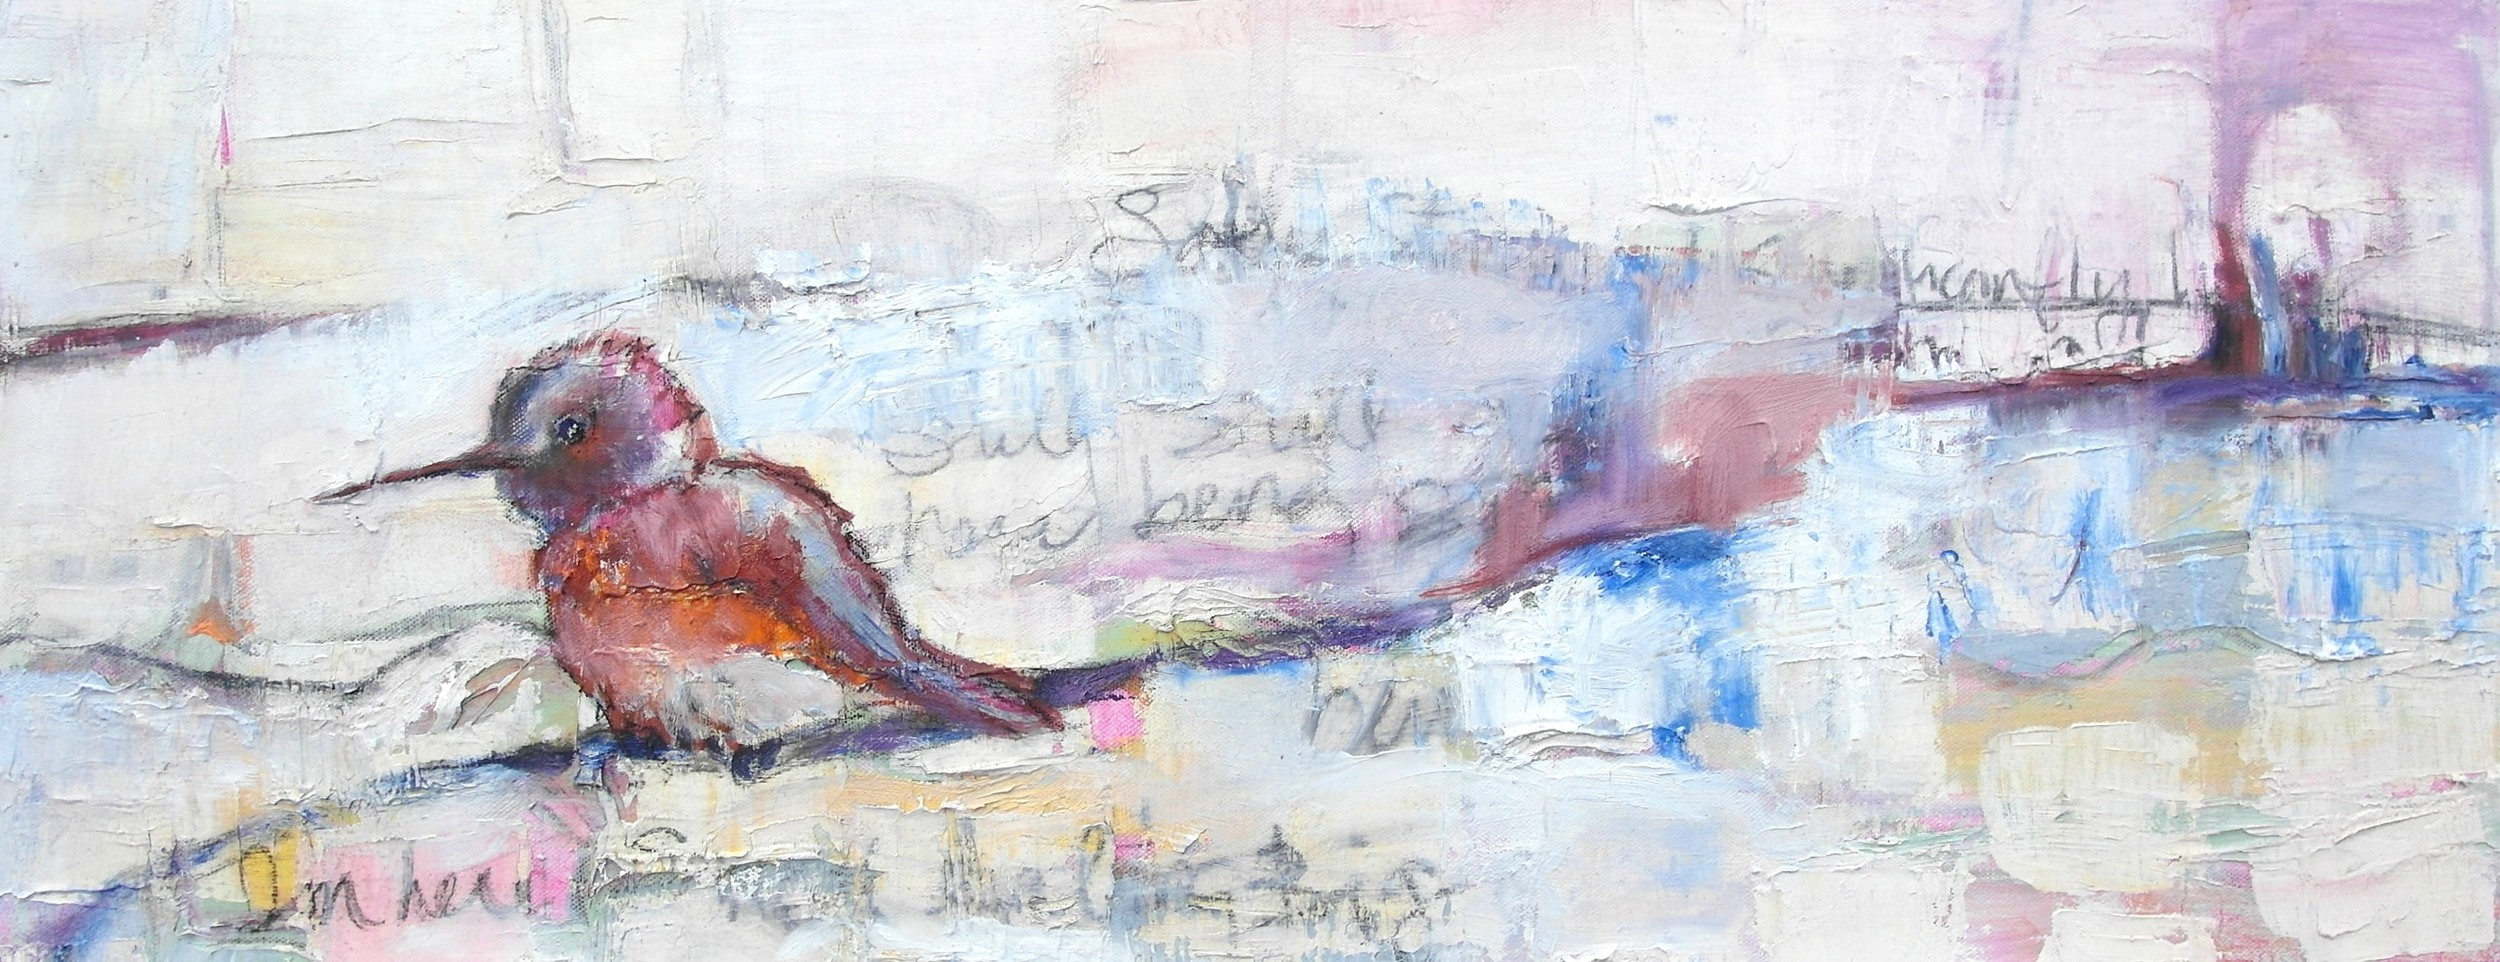 I'm Here      12x30  oil on canvas